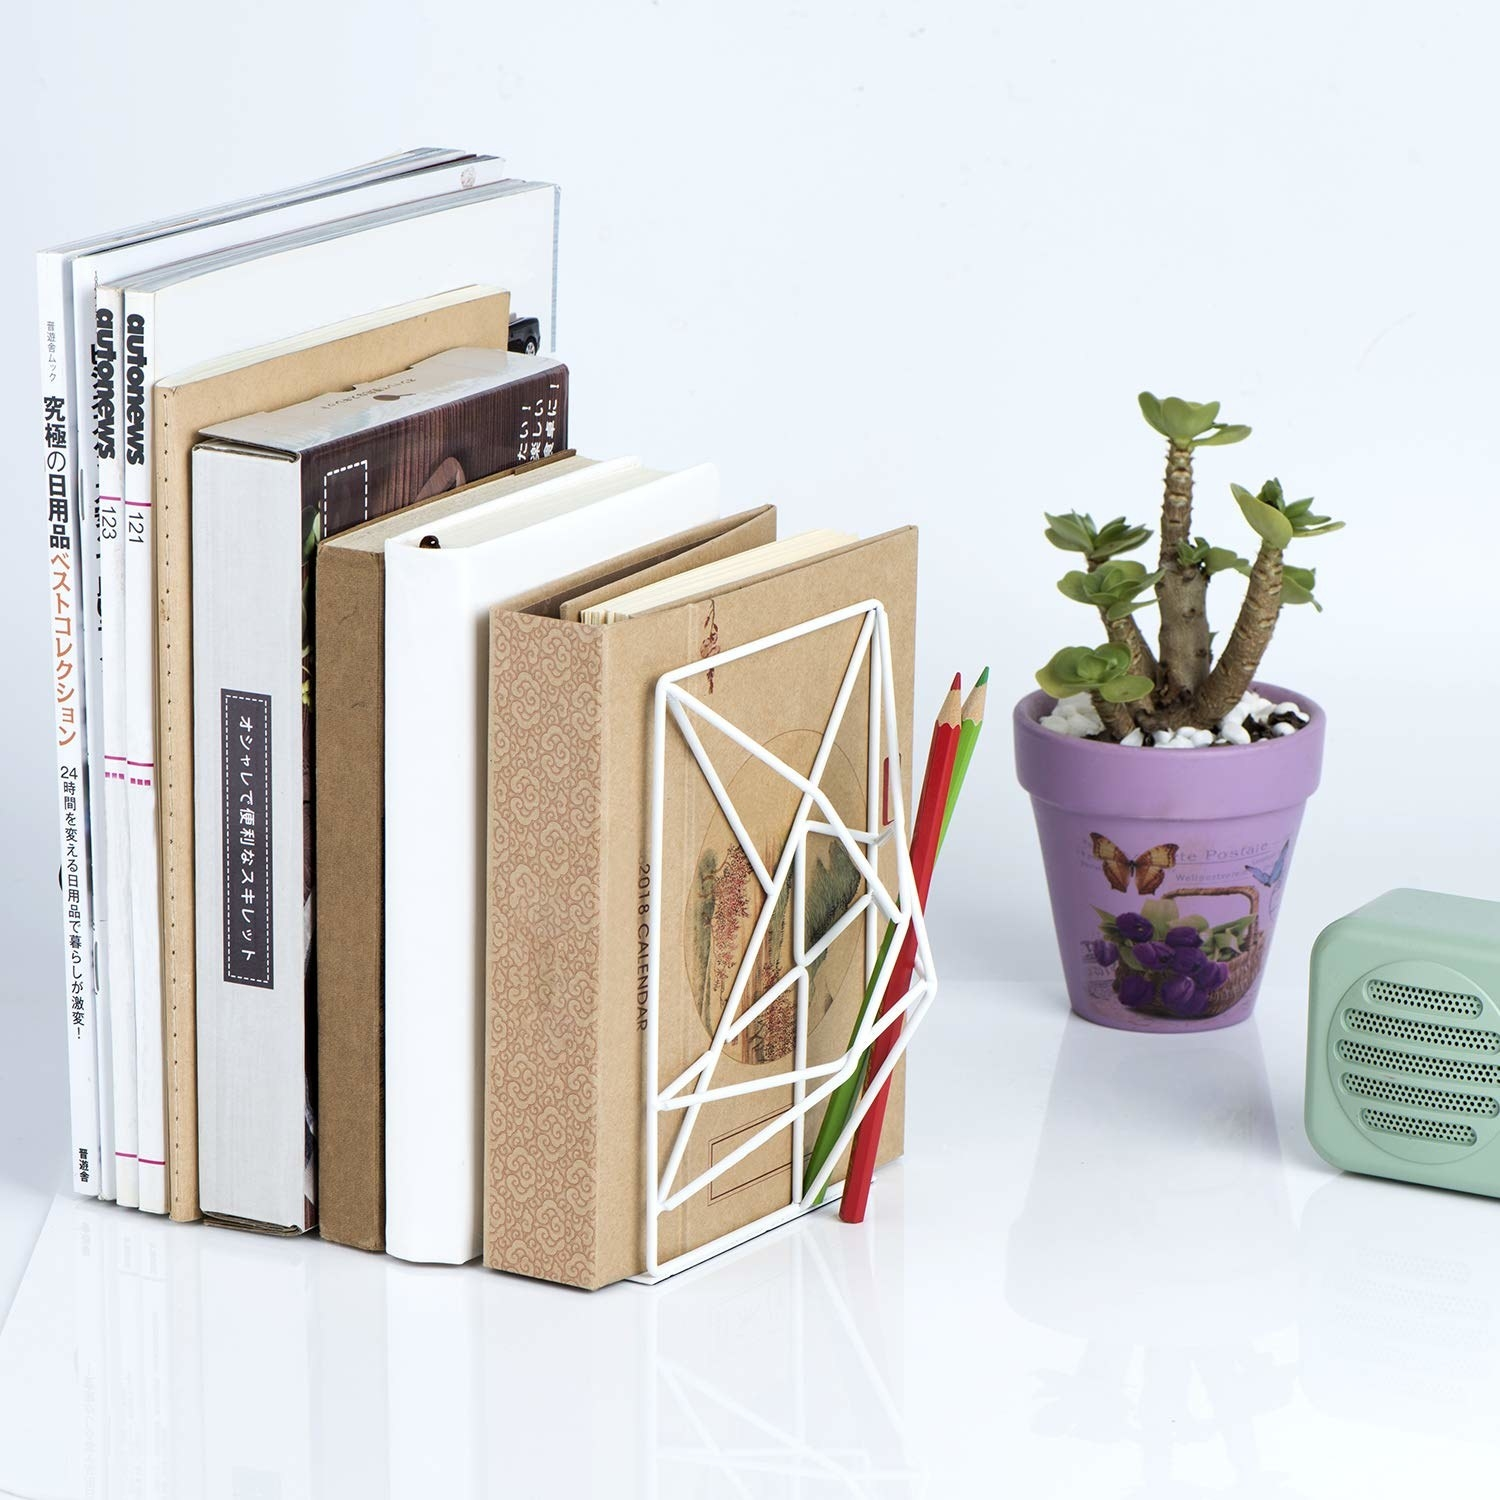 A stack of books sitting upright between two wiry bookends